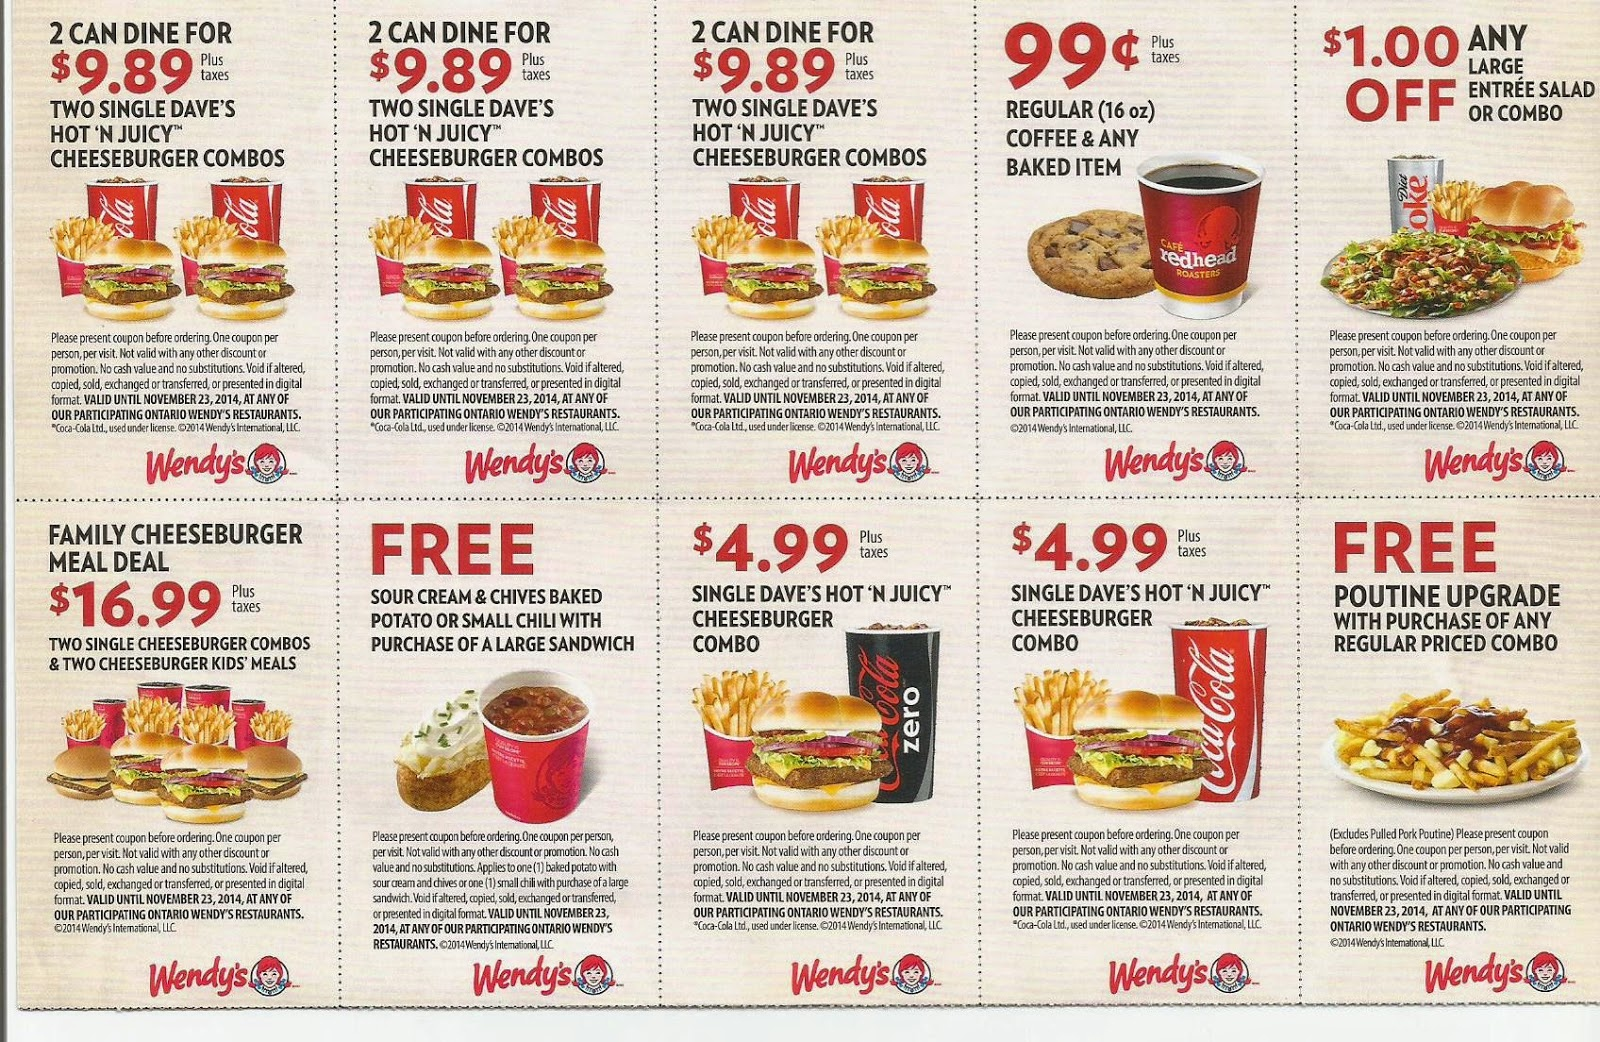 Free Printable Wendys Coupons For 2016 (28) - Free Printable Coupons For Food